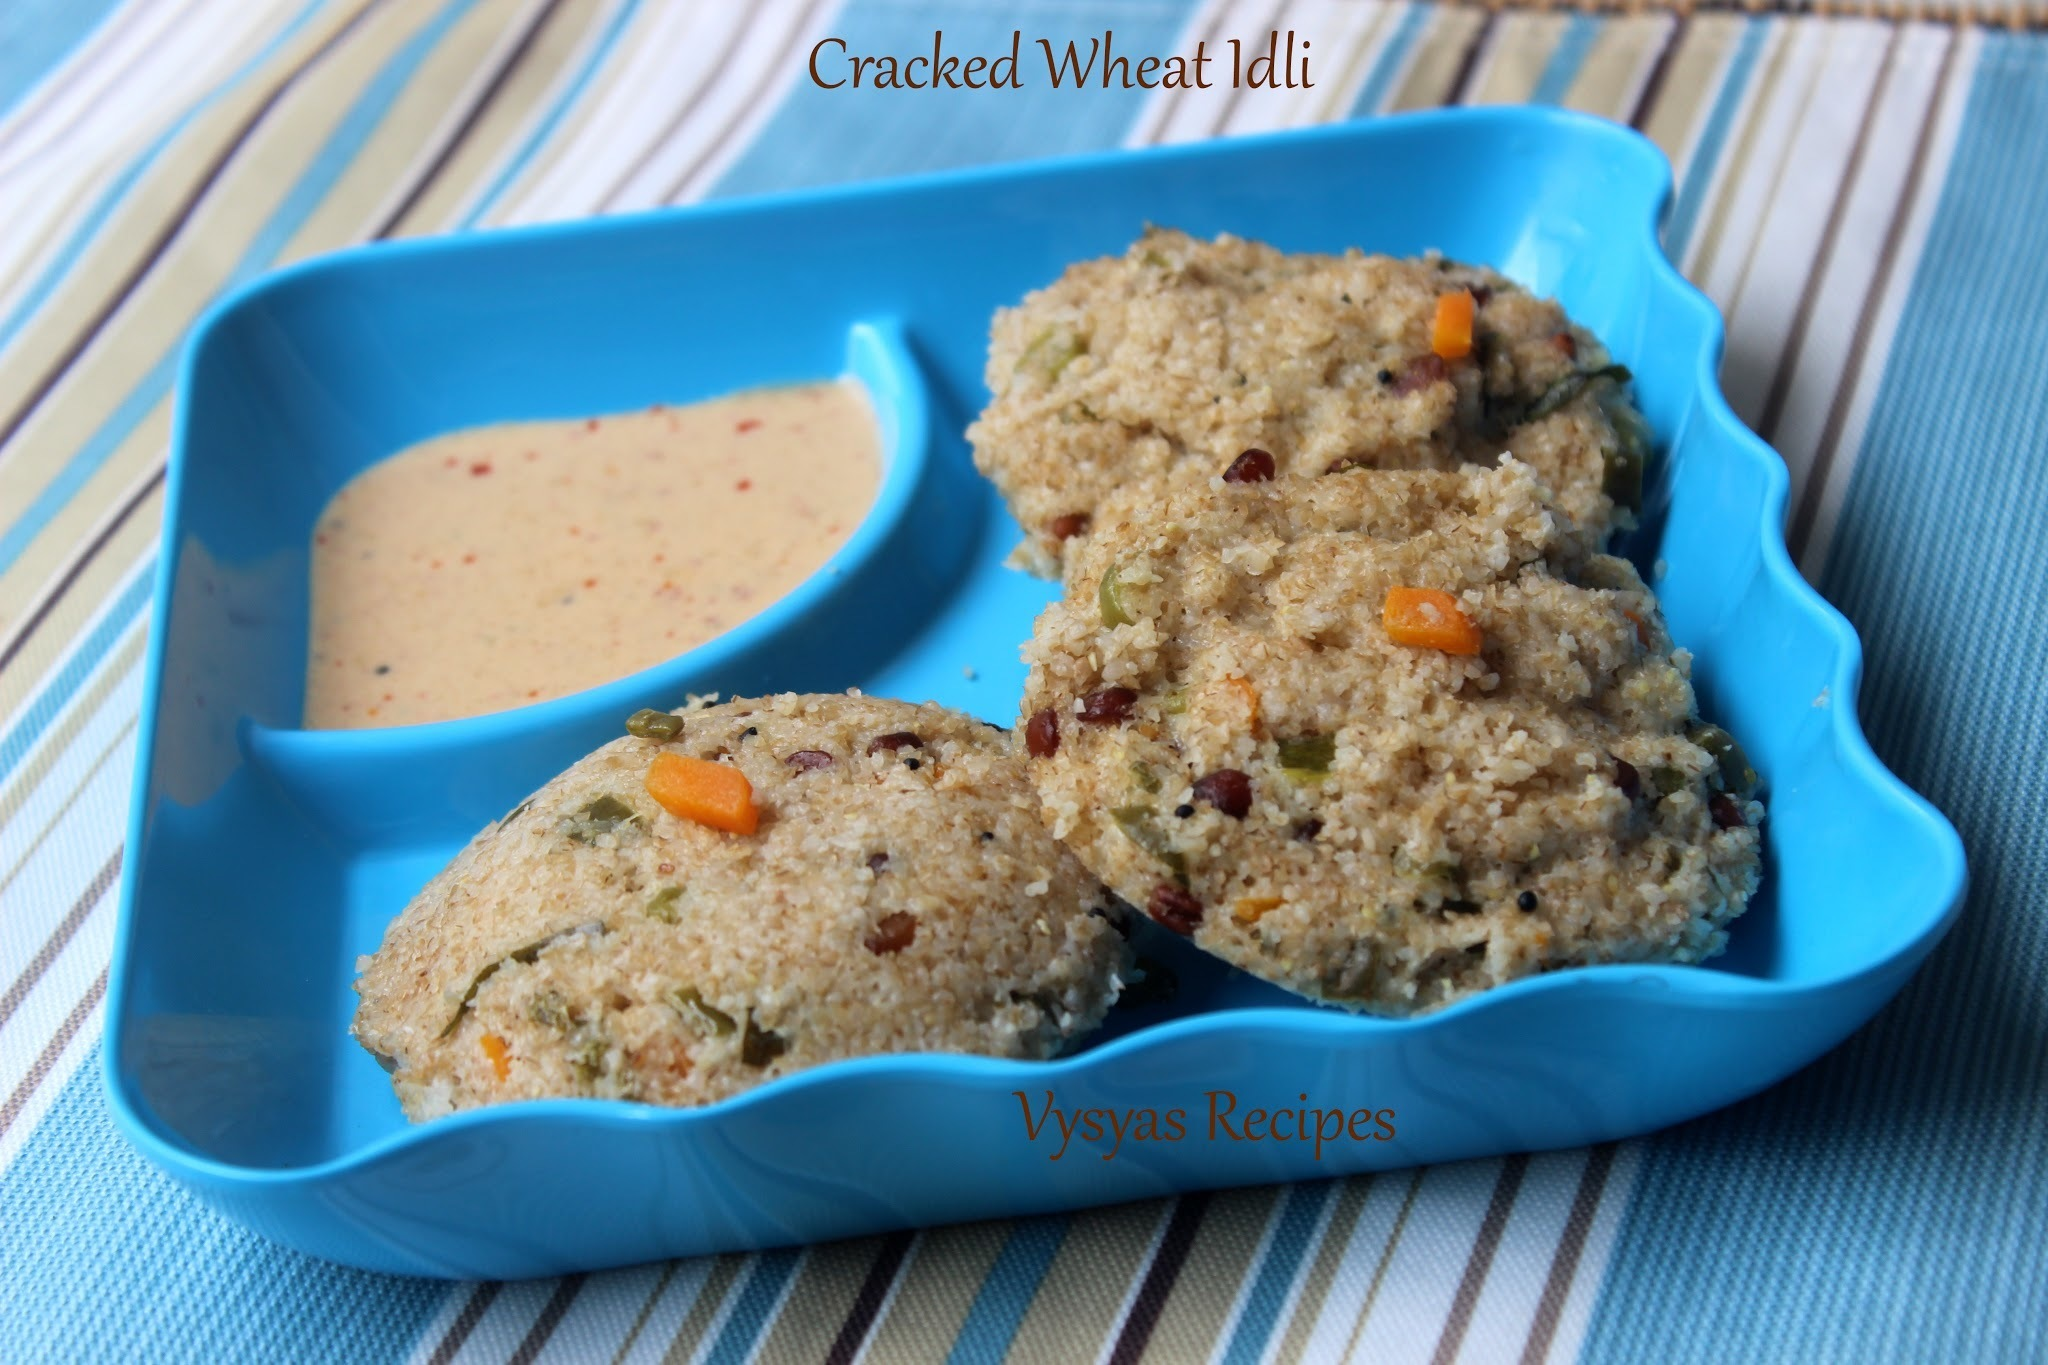 Cracked wheat Vegetable  Idli -  Instant Godhuma Rava Idli -  Dalia Idli